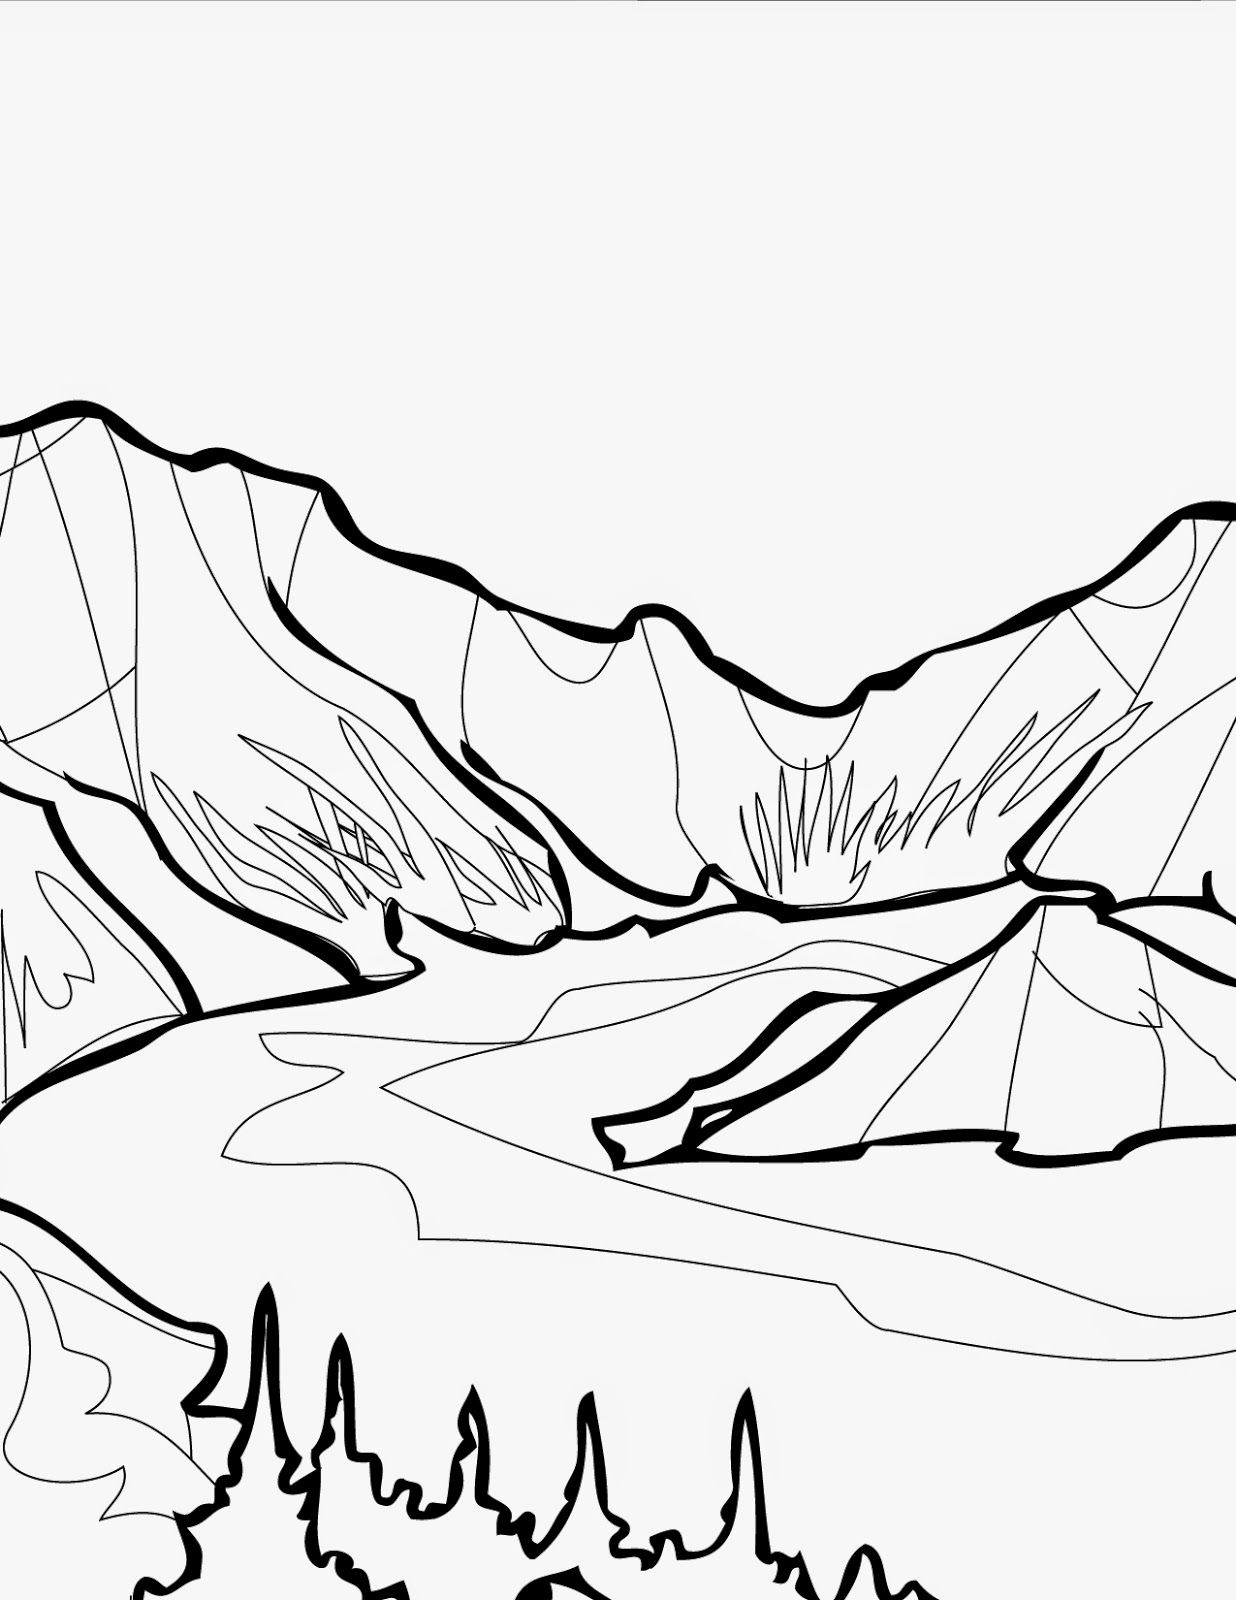 Free coloring pages national parks - Free Coloring Pages National Parks Google Search